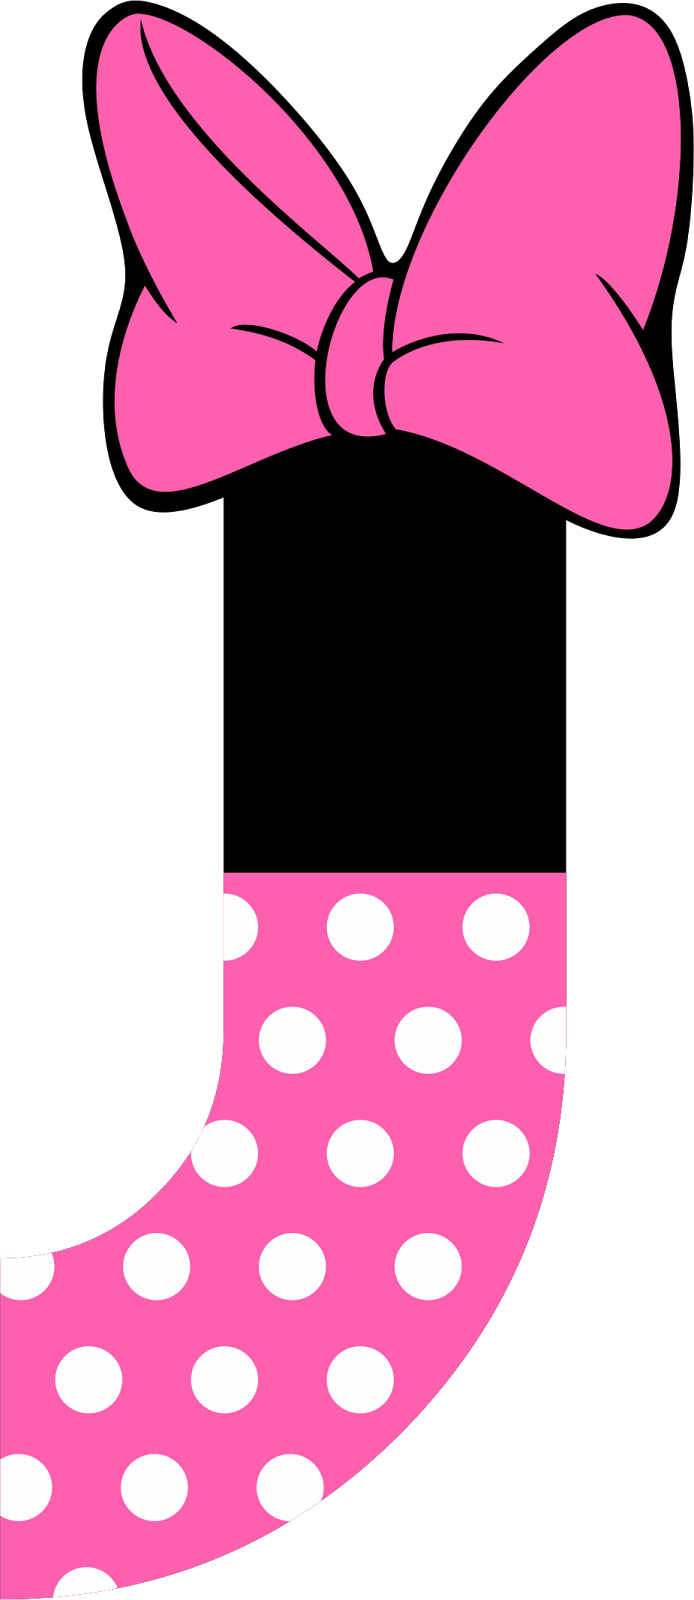 Pin By Krazee On ALPHABET FONTS Minnie Mouse Party